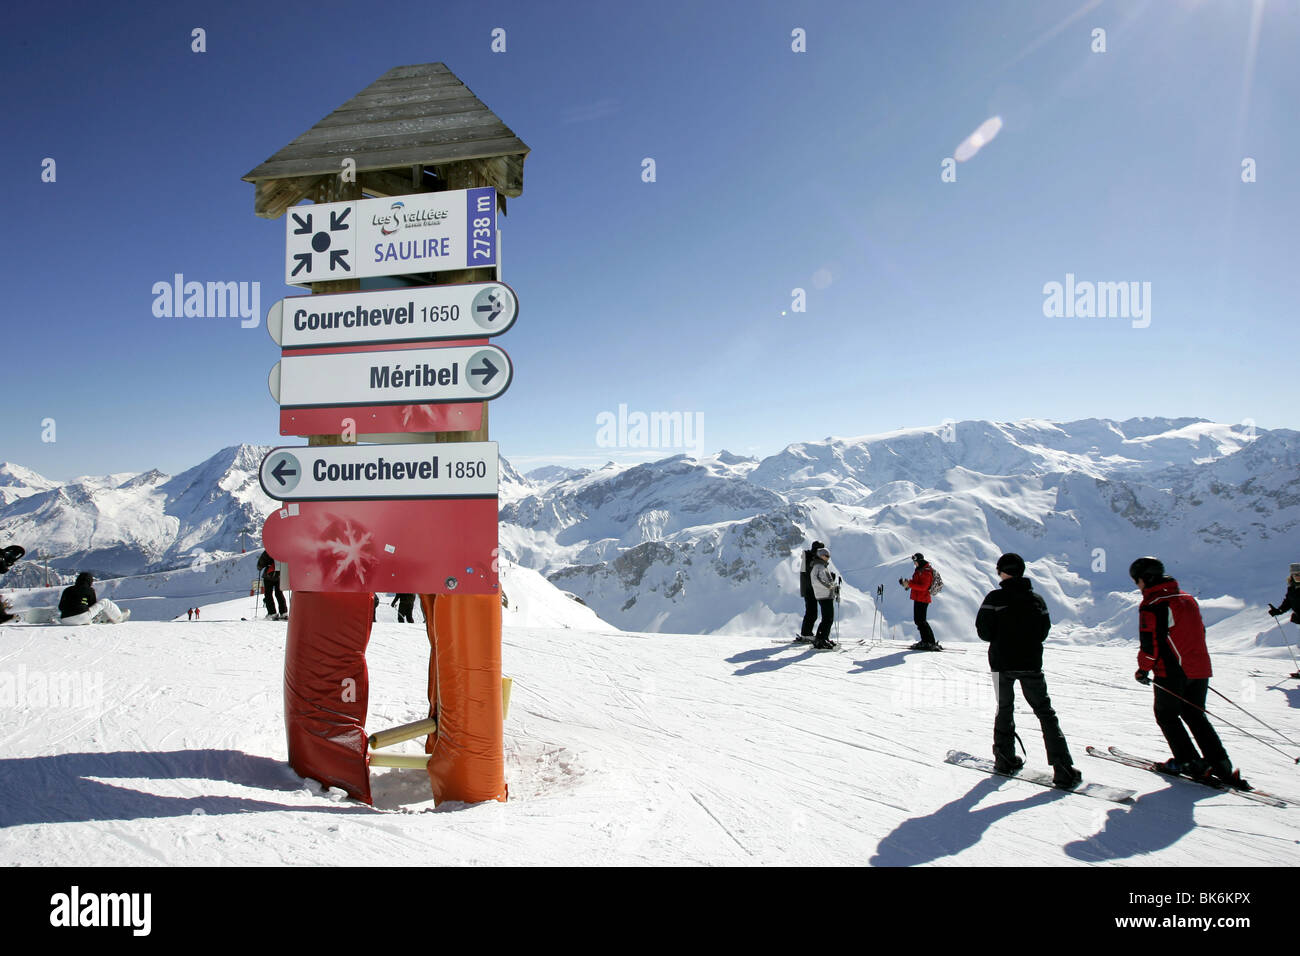 Ski Sign Courchevel France Stock Photos Ski Sign Courchevel France